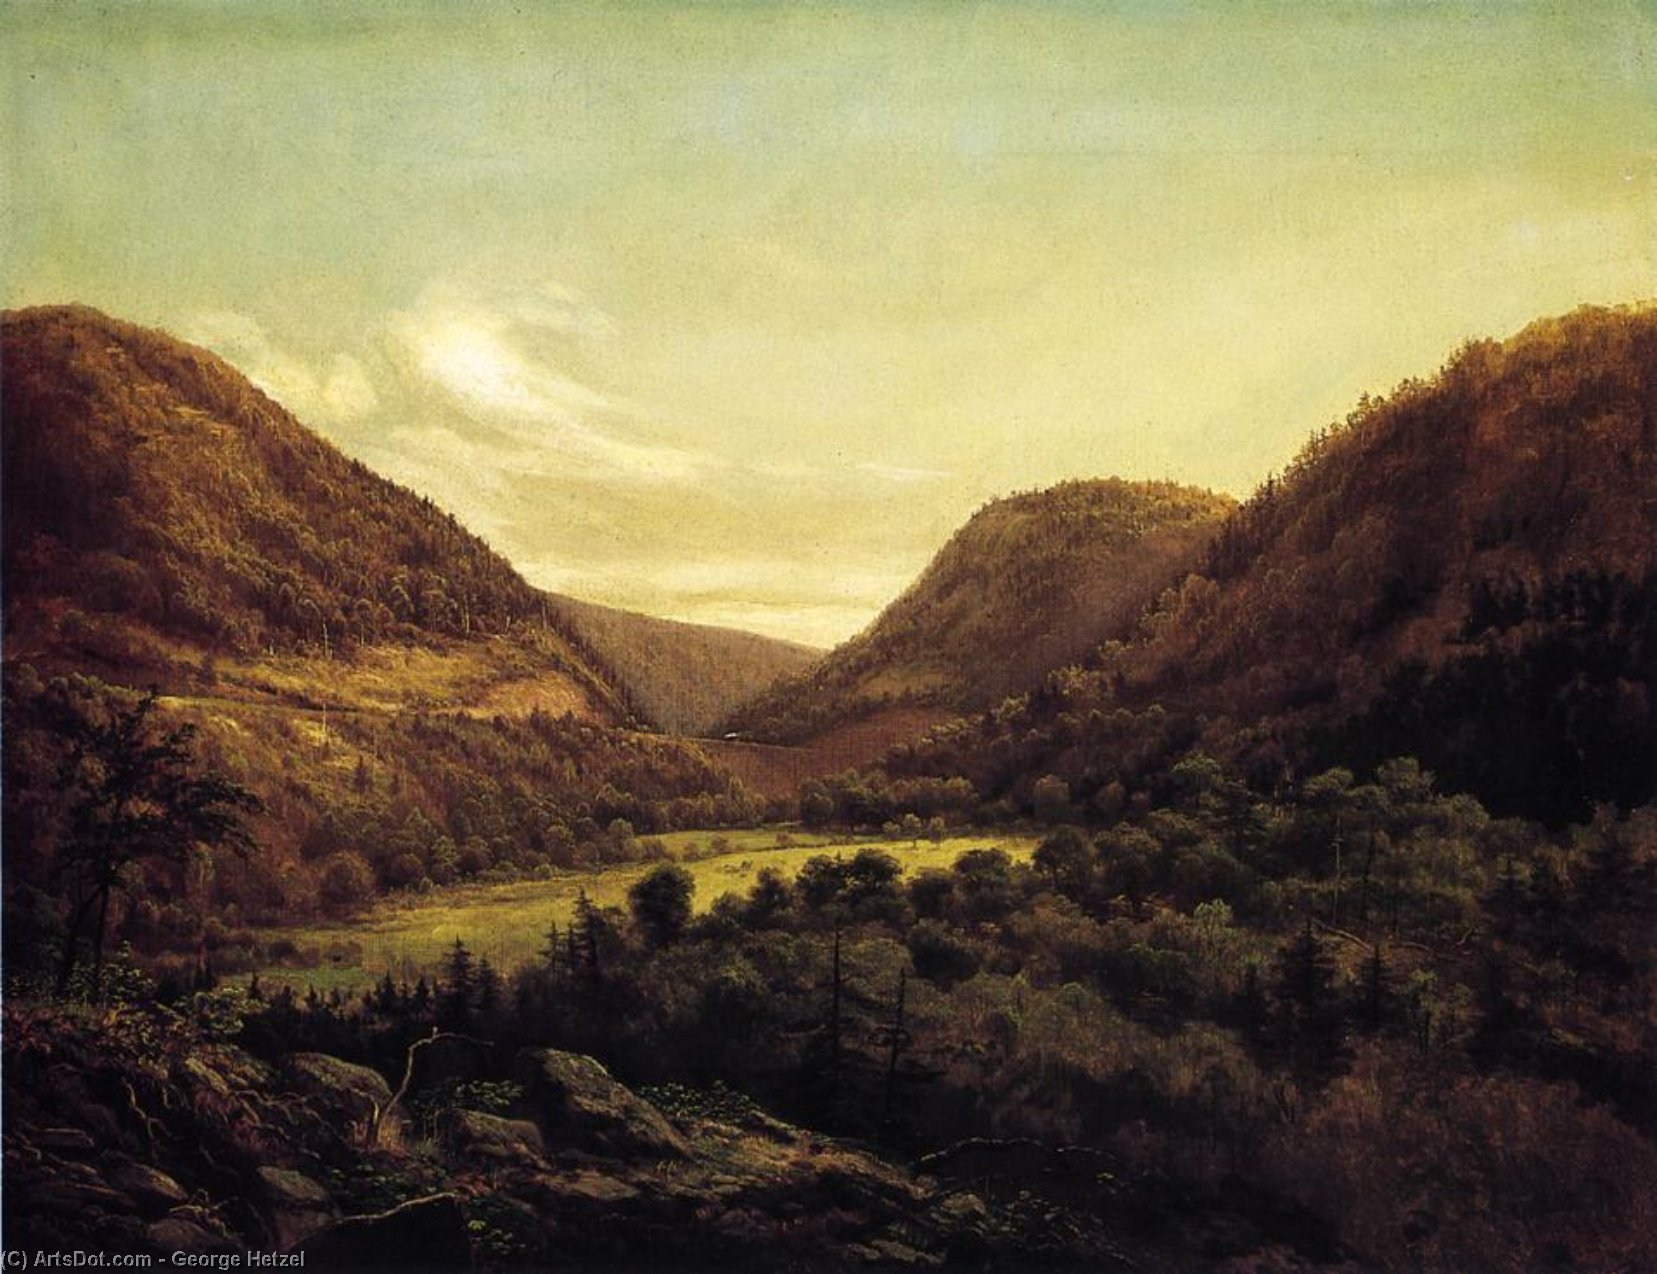 Horseshoe Bend, 1876 by George Hetzel (1826-1899, France) | Art Reproduction | ArtsDot.com